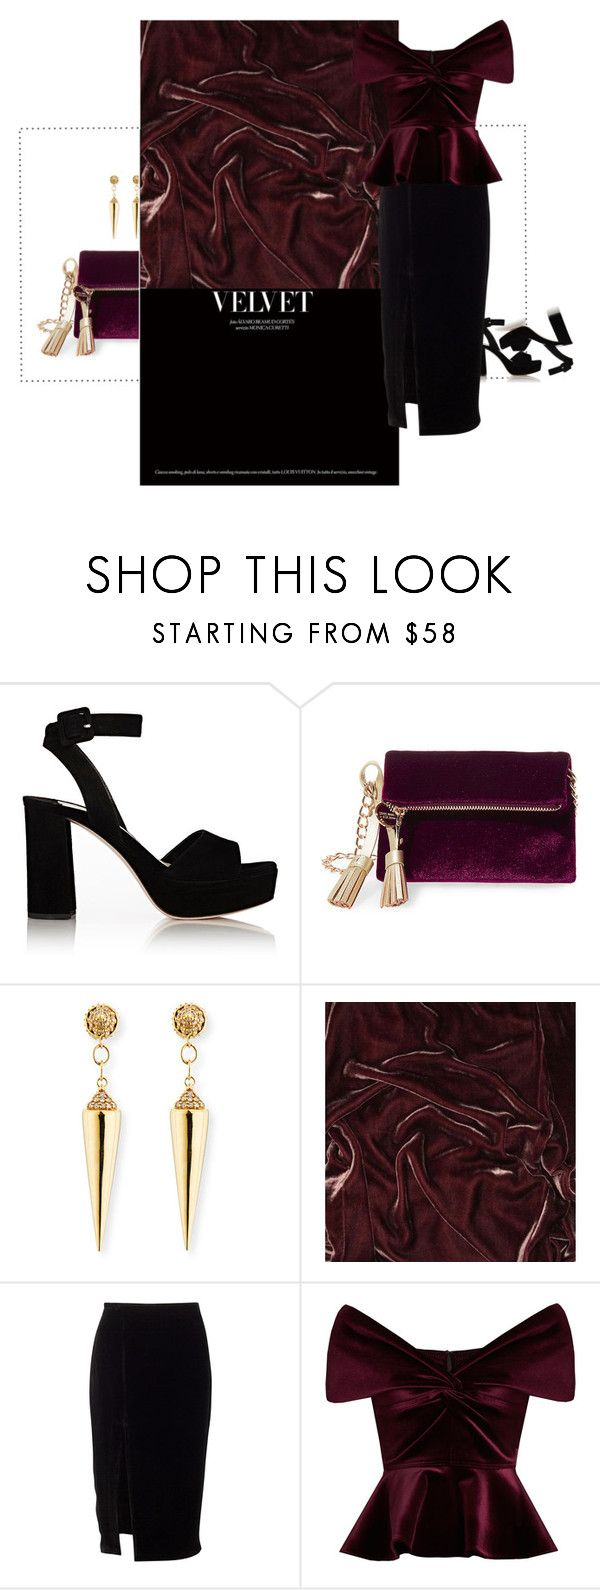 """v e l v e t"" by sharmarie ❤ liked on Polyvore featuring Miu Miu, Steve Madden, Sydney Evan, Soft Surroundings and Emilio De La Morena"